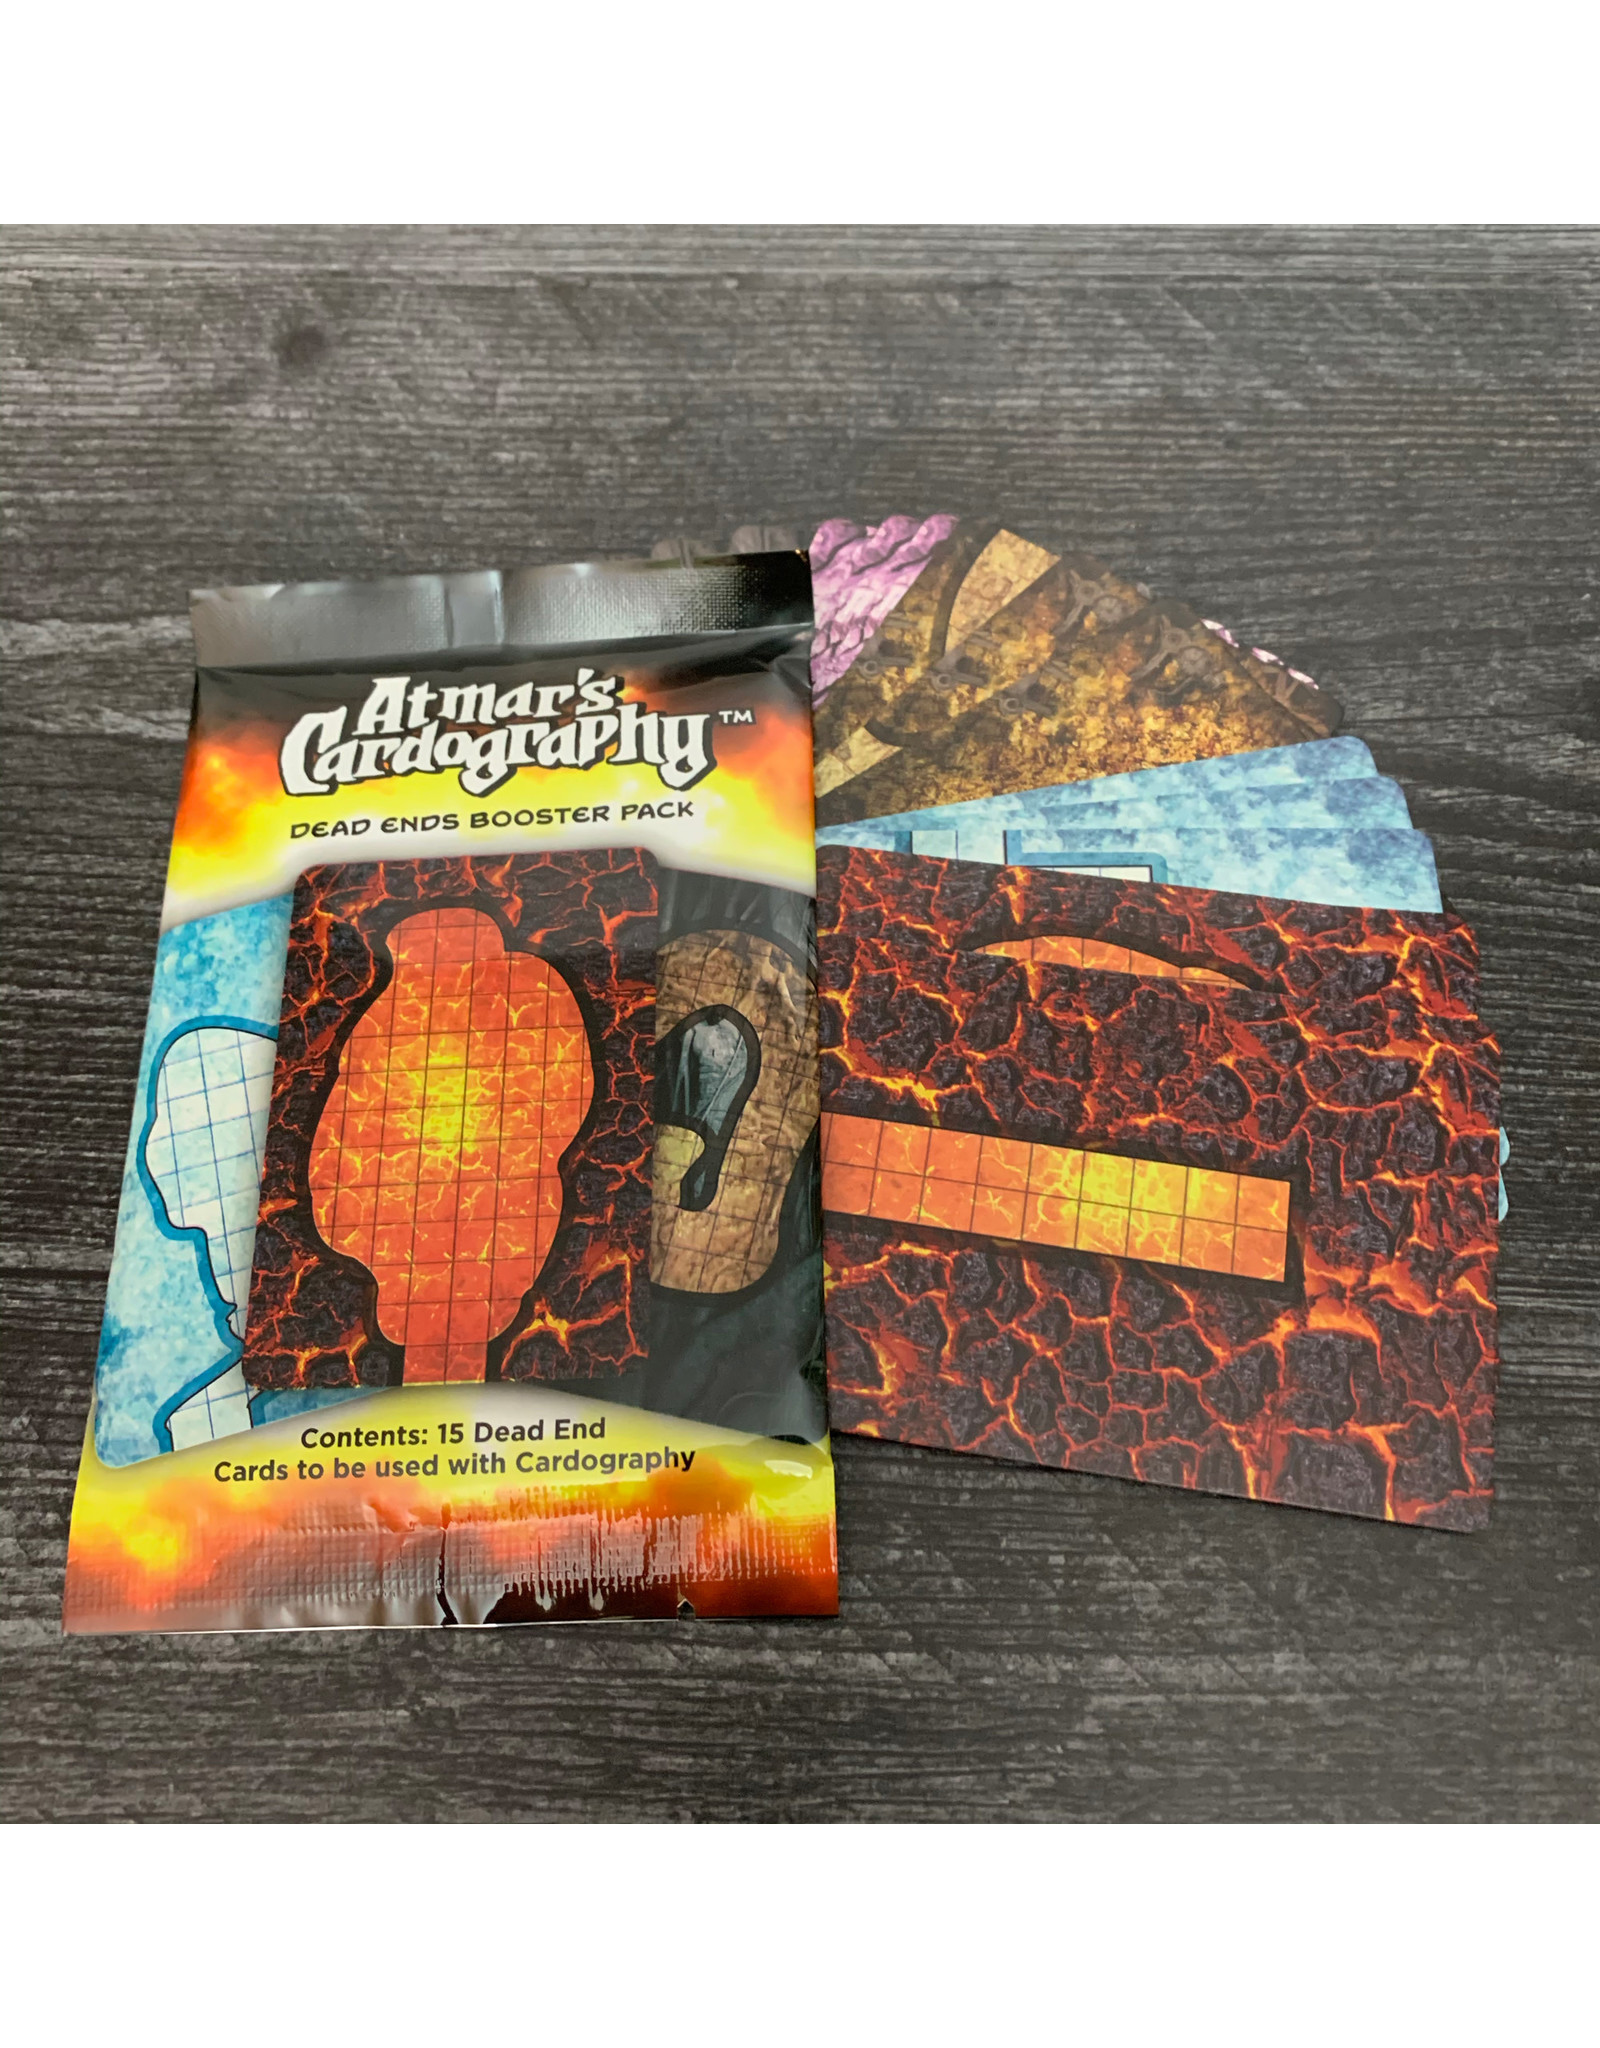 Atmar's Cardography Dead Ends Booster Pack